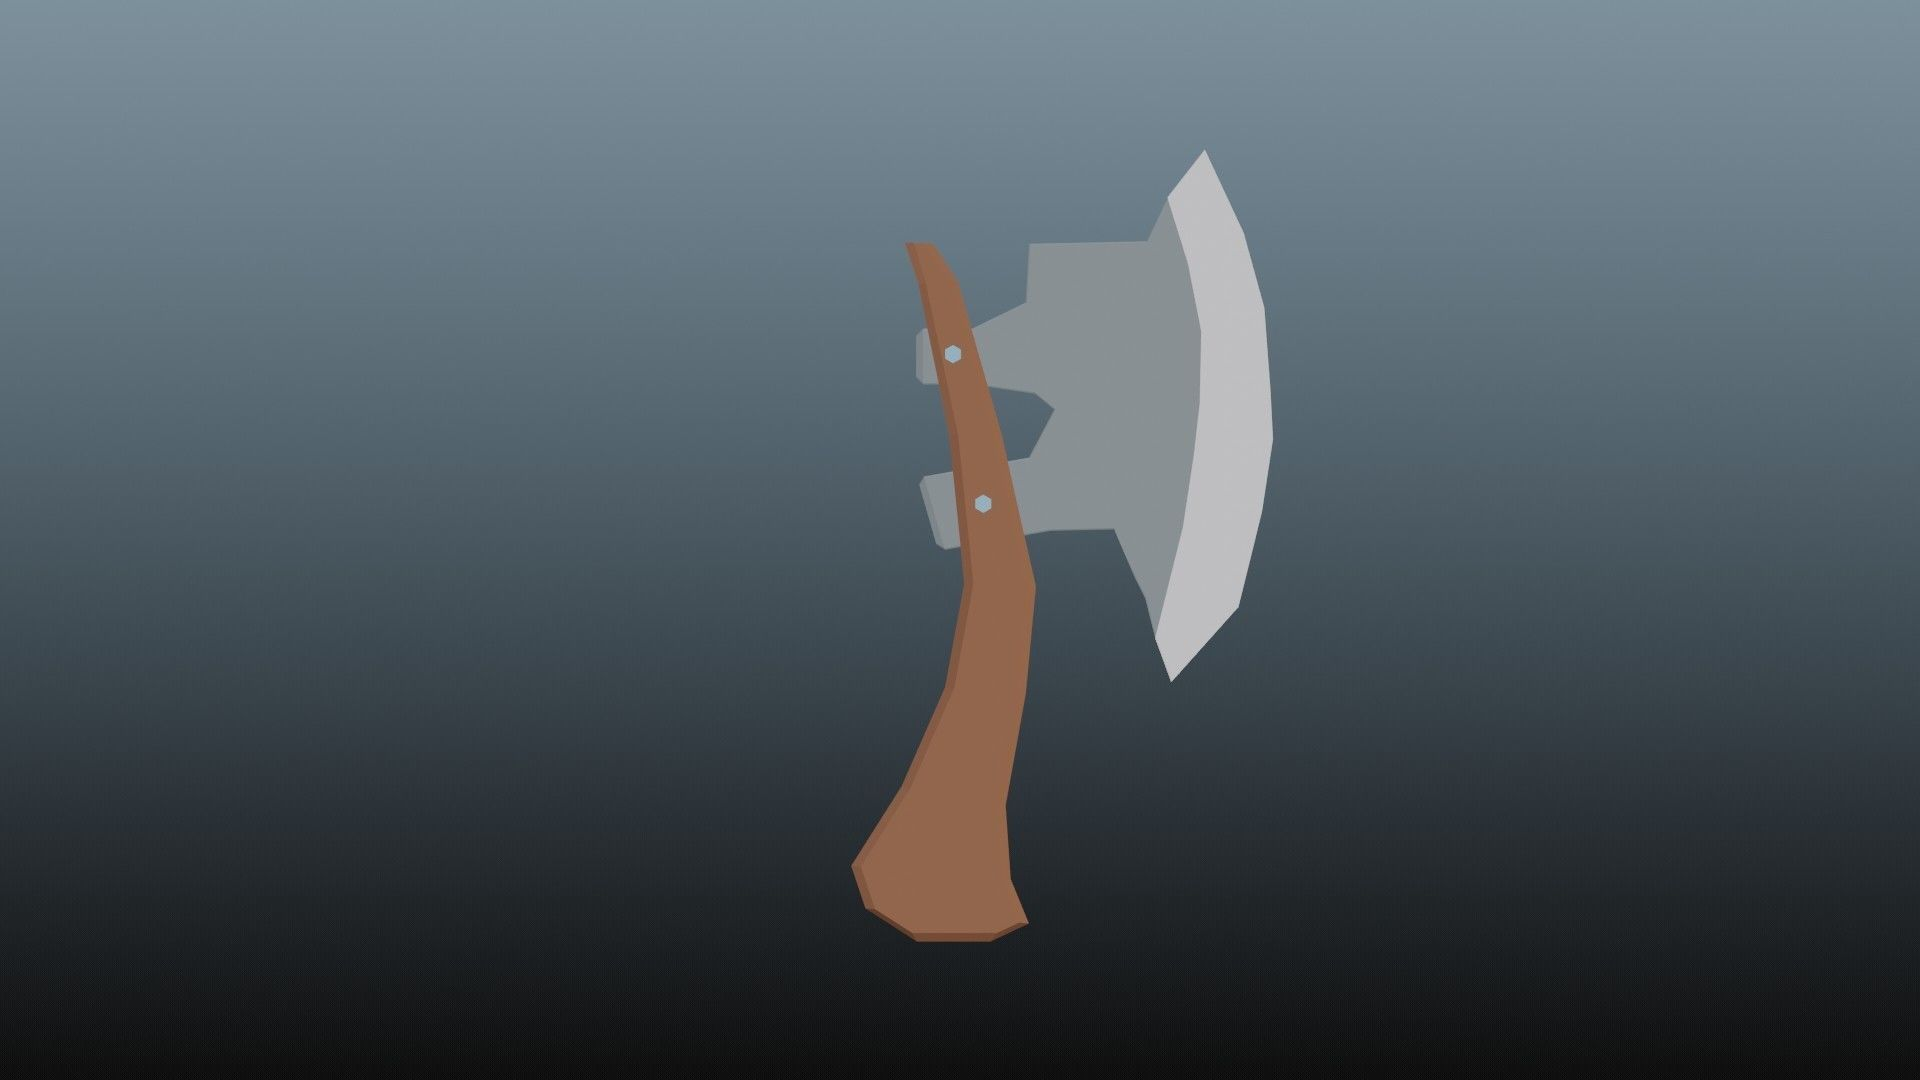 Low poly axe 1